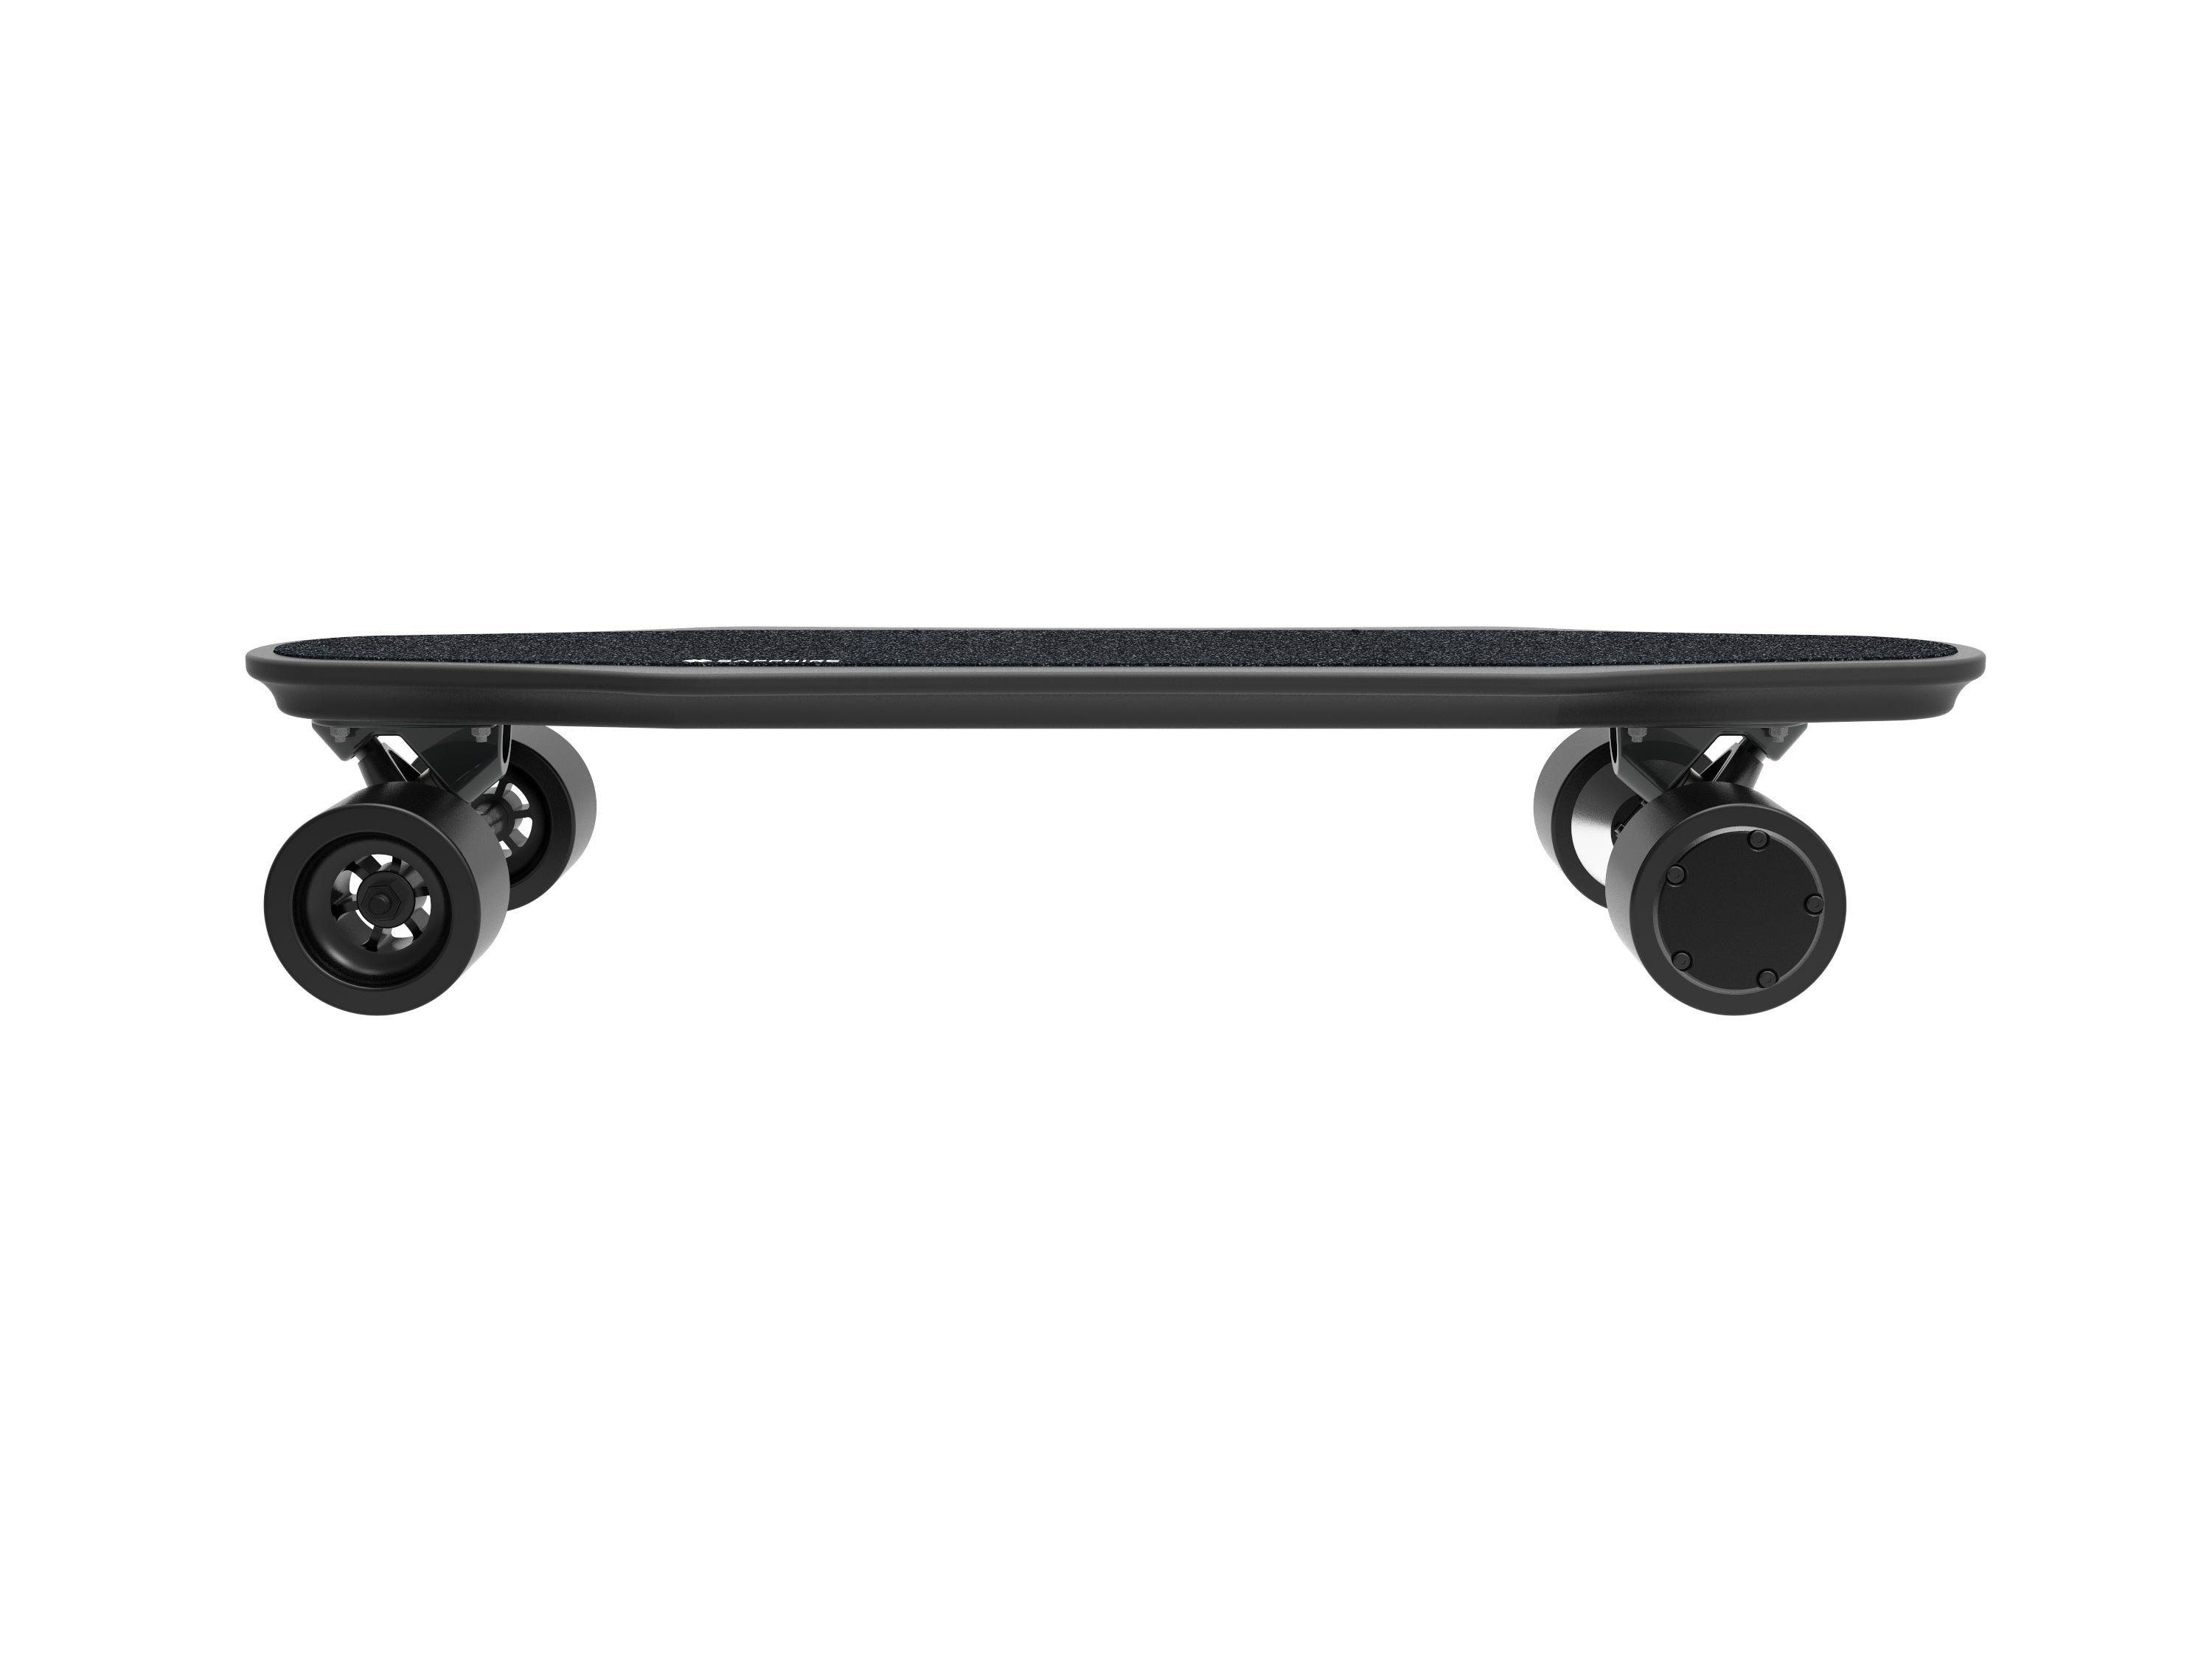 01 Pro Electric Board